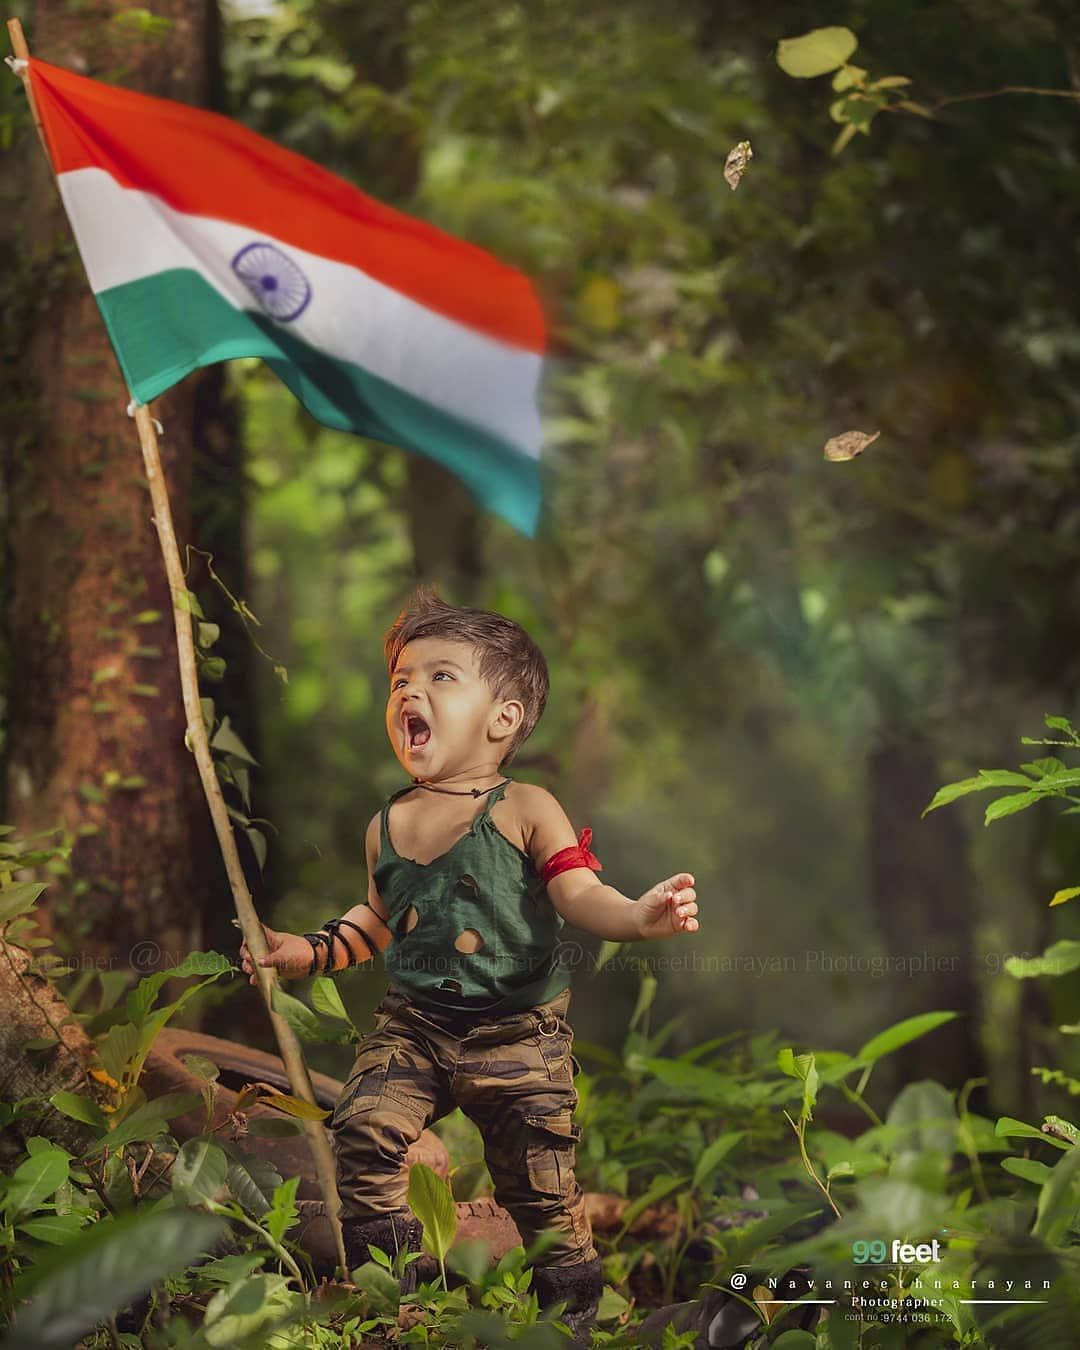 Image May Contain One Or More People People Standing Child And Outdoor Indian Flag Images Army Images Indian Army Wallpapers